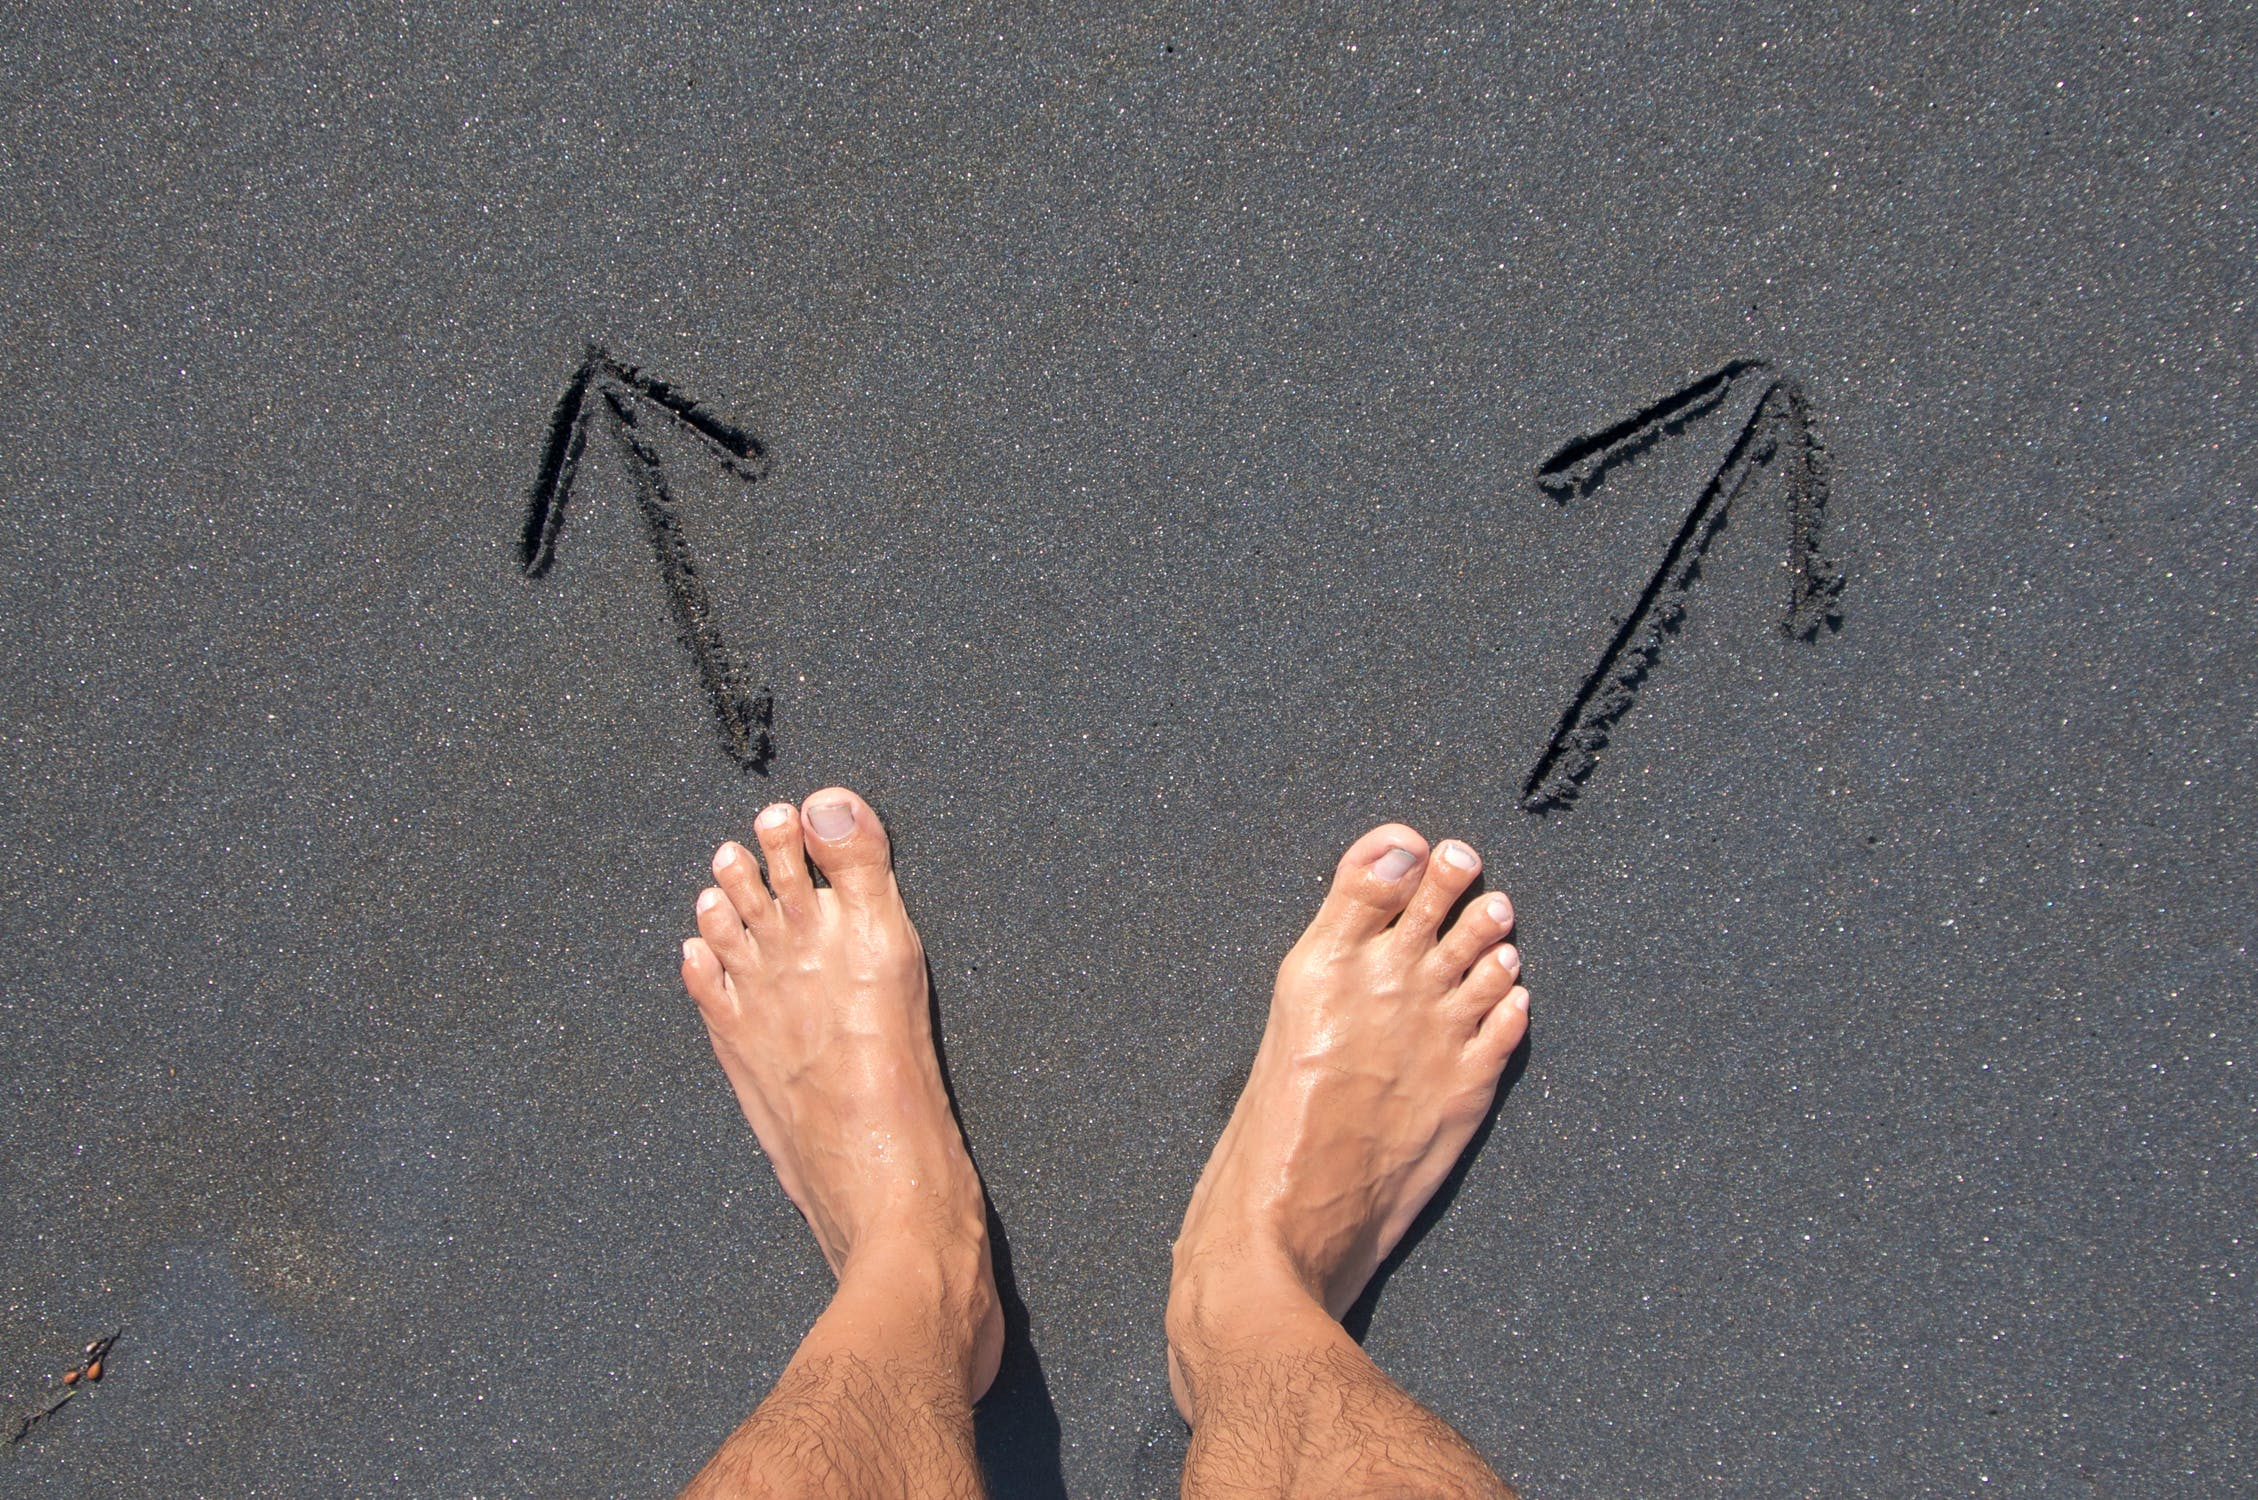 Two feet and two directions representing choosing